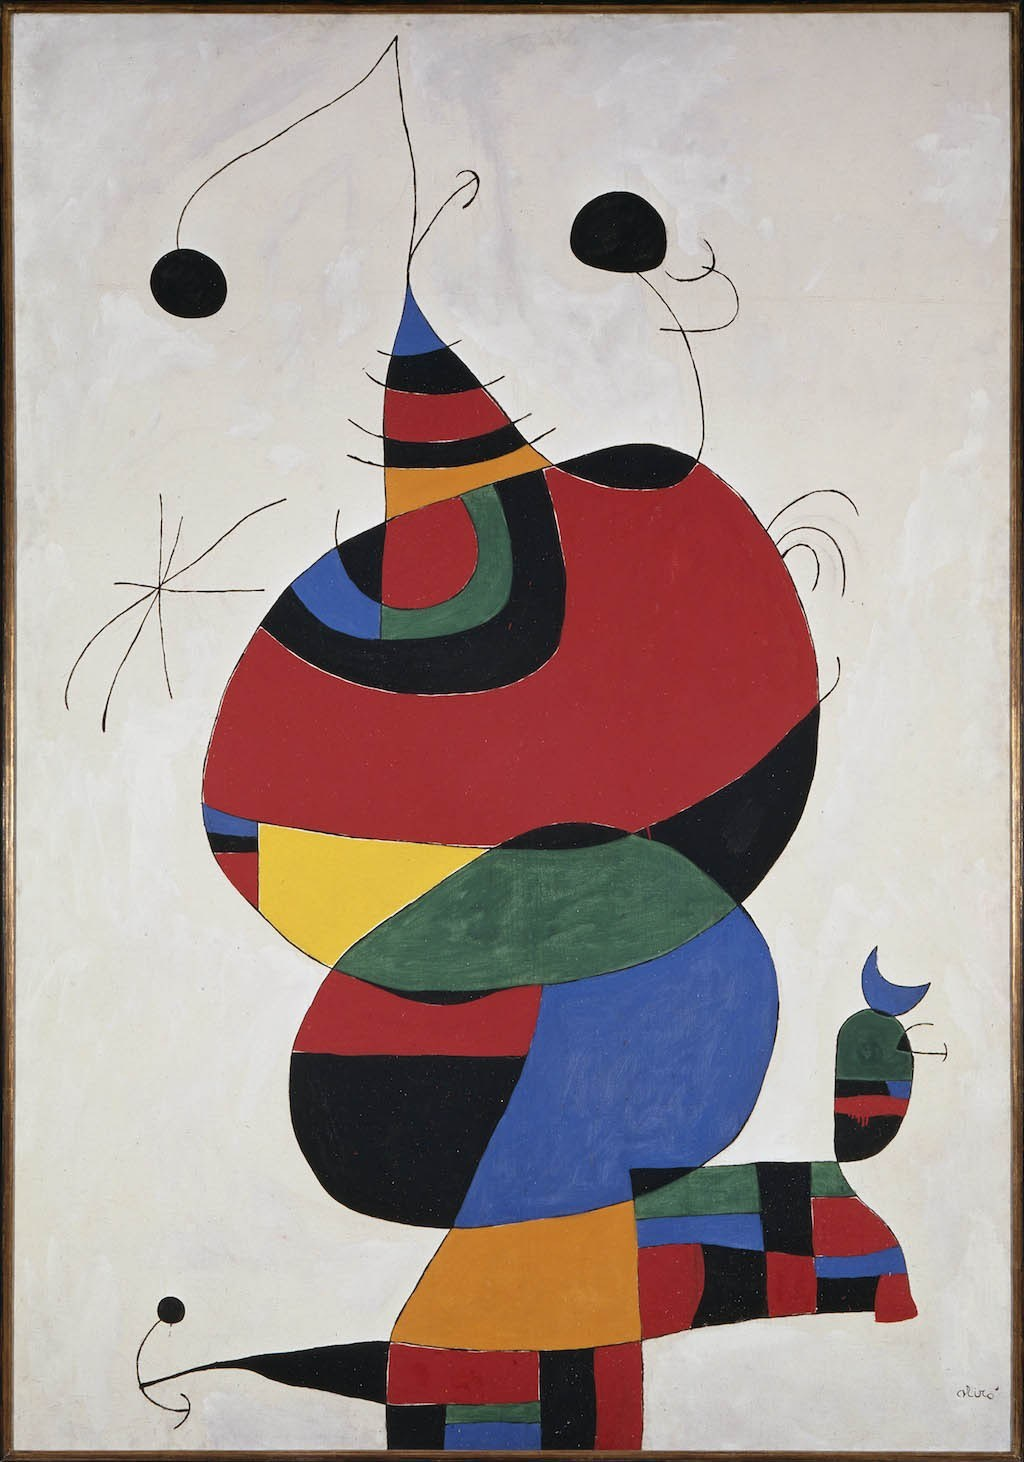 RETURNOFFLAVIA_Joan-Miro-Woman-Bird-Star